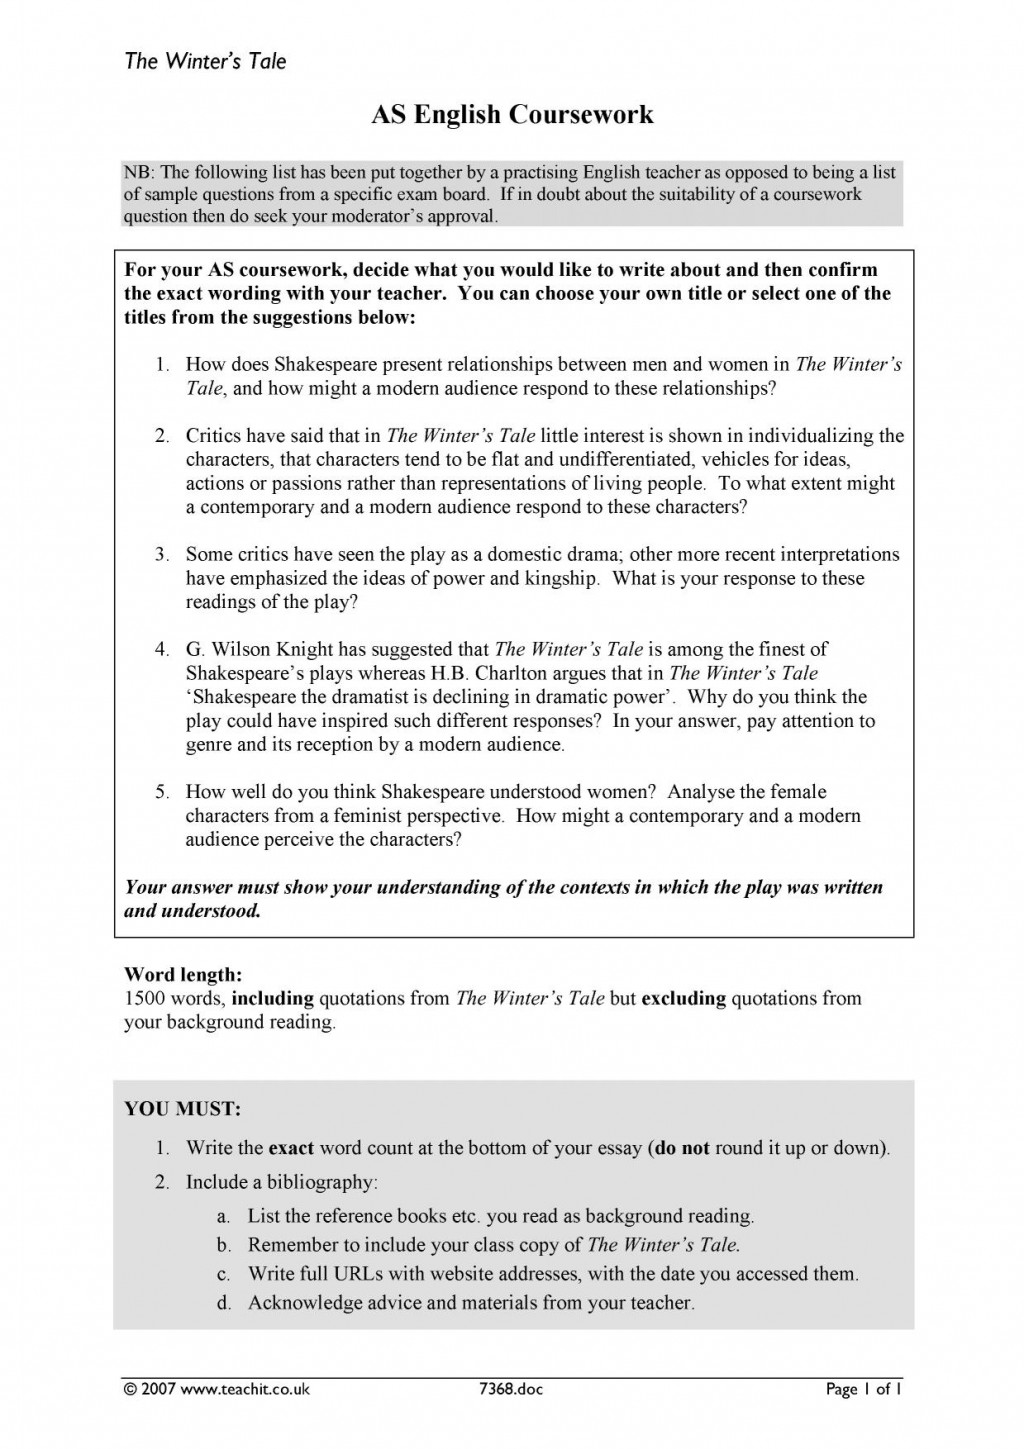 012 Women Power Essay On Writing The Of Portfolio Words For With Shocking Abuse Introduction Nuclear Black Topics Large